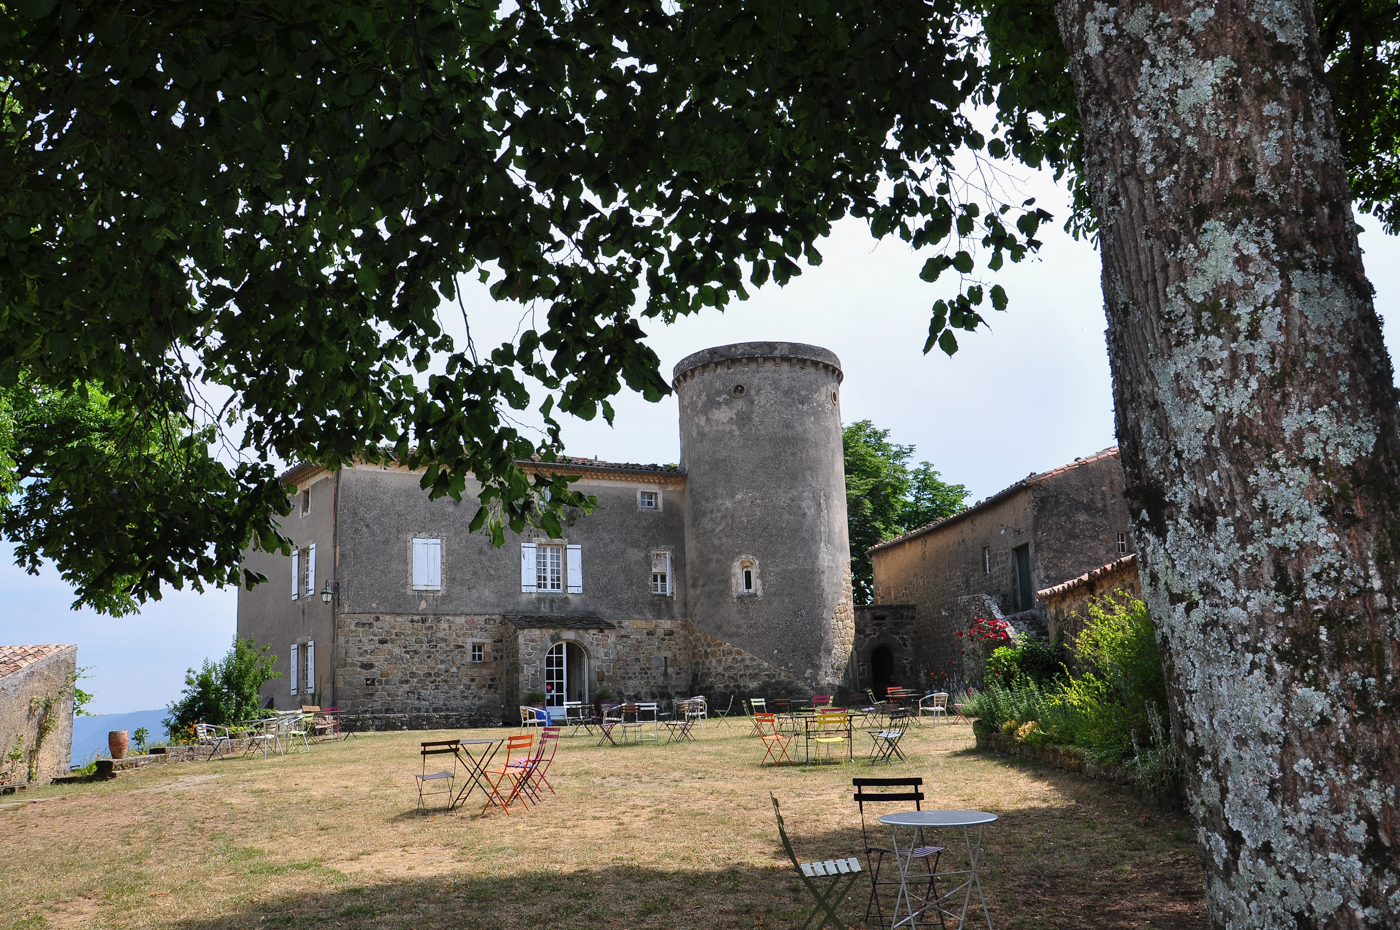 Holiday rentals for groups : Gîte d'étape au Château de Liviers